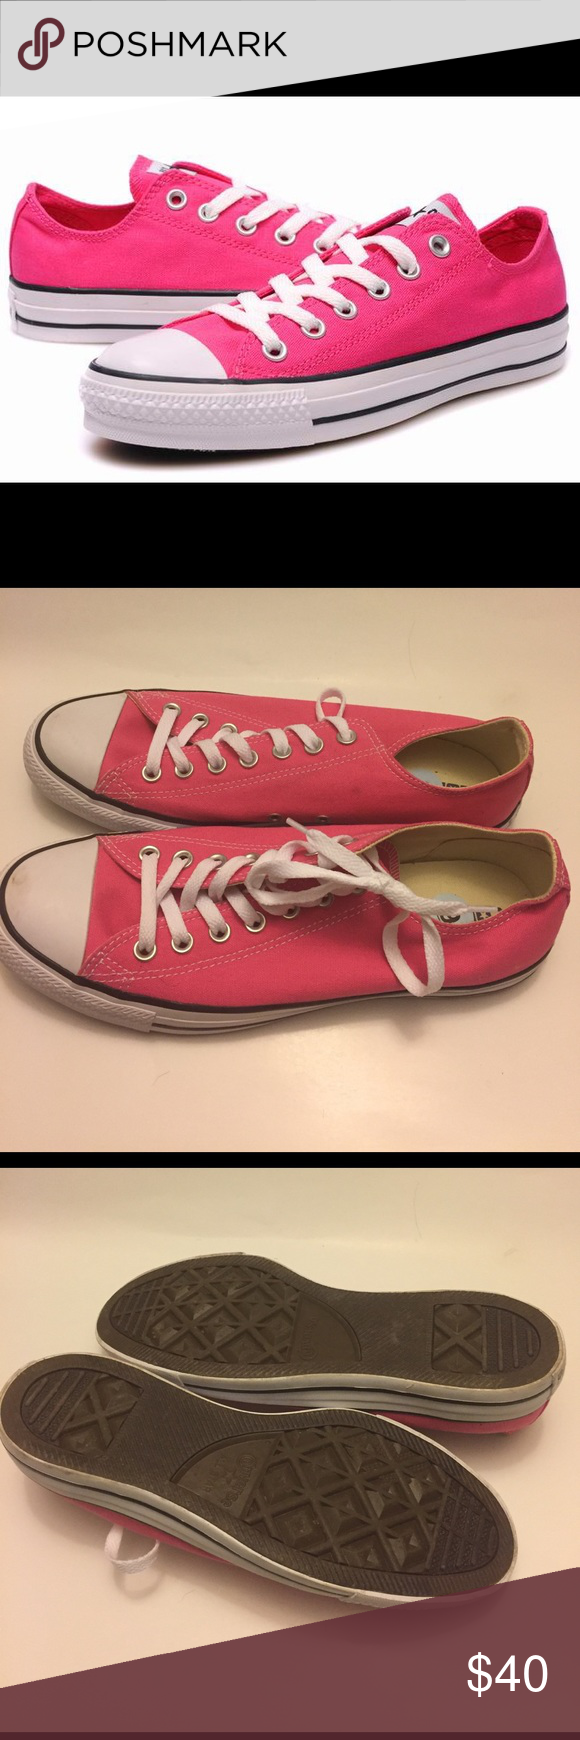 Brand New Converse Sneakers Size 9 Brand New Converse Sneakers Size 9 Converse Shoes Sneakers